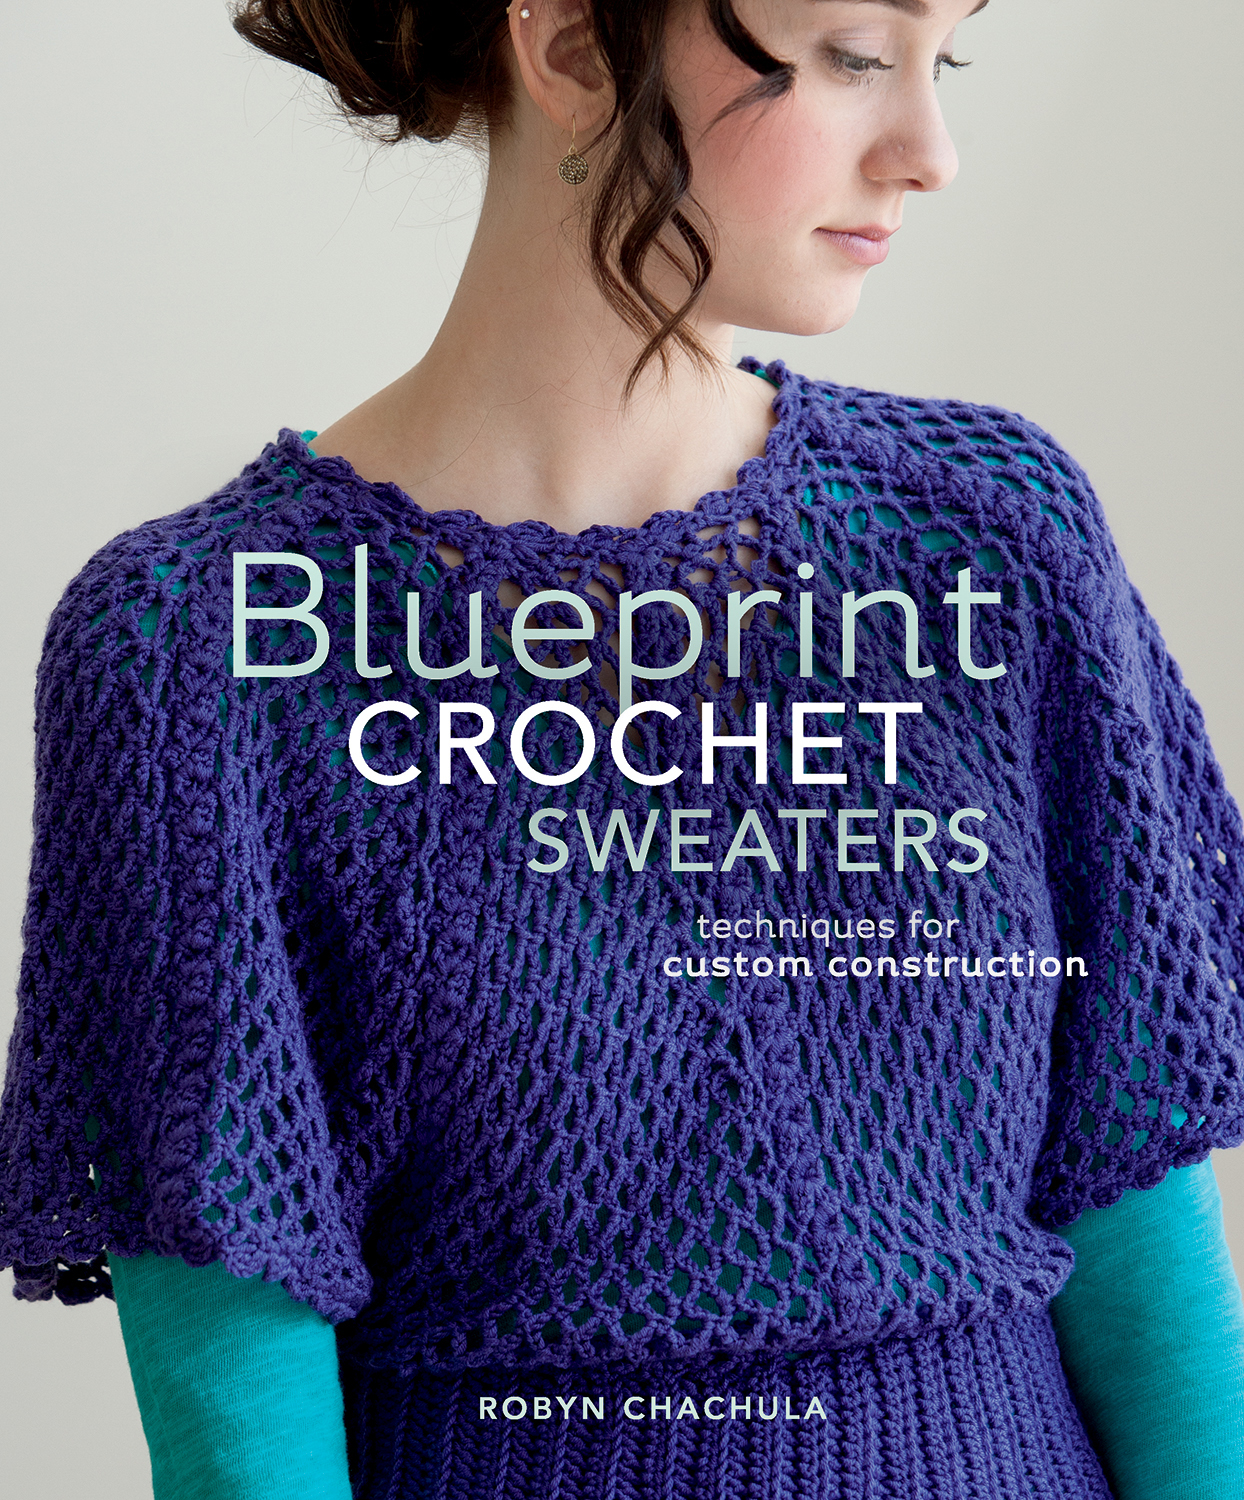 Crocheting Sweaters : ... Ramblings: Book Review: Blueprint Crochet Sweaters by Robyn Chachula